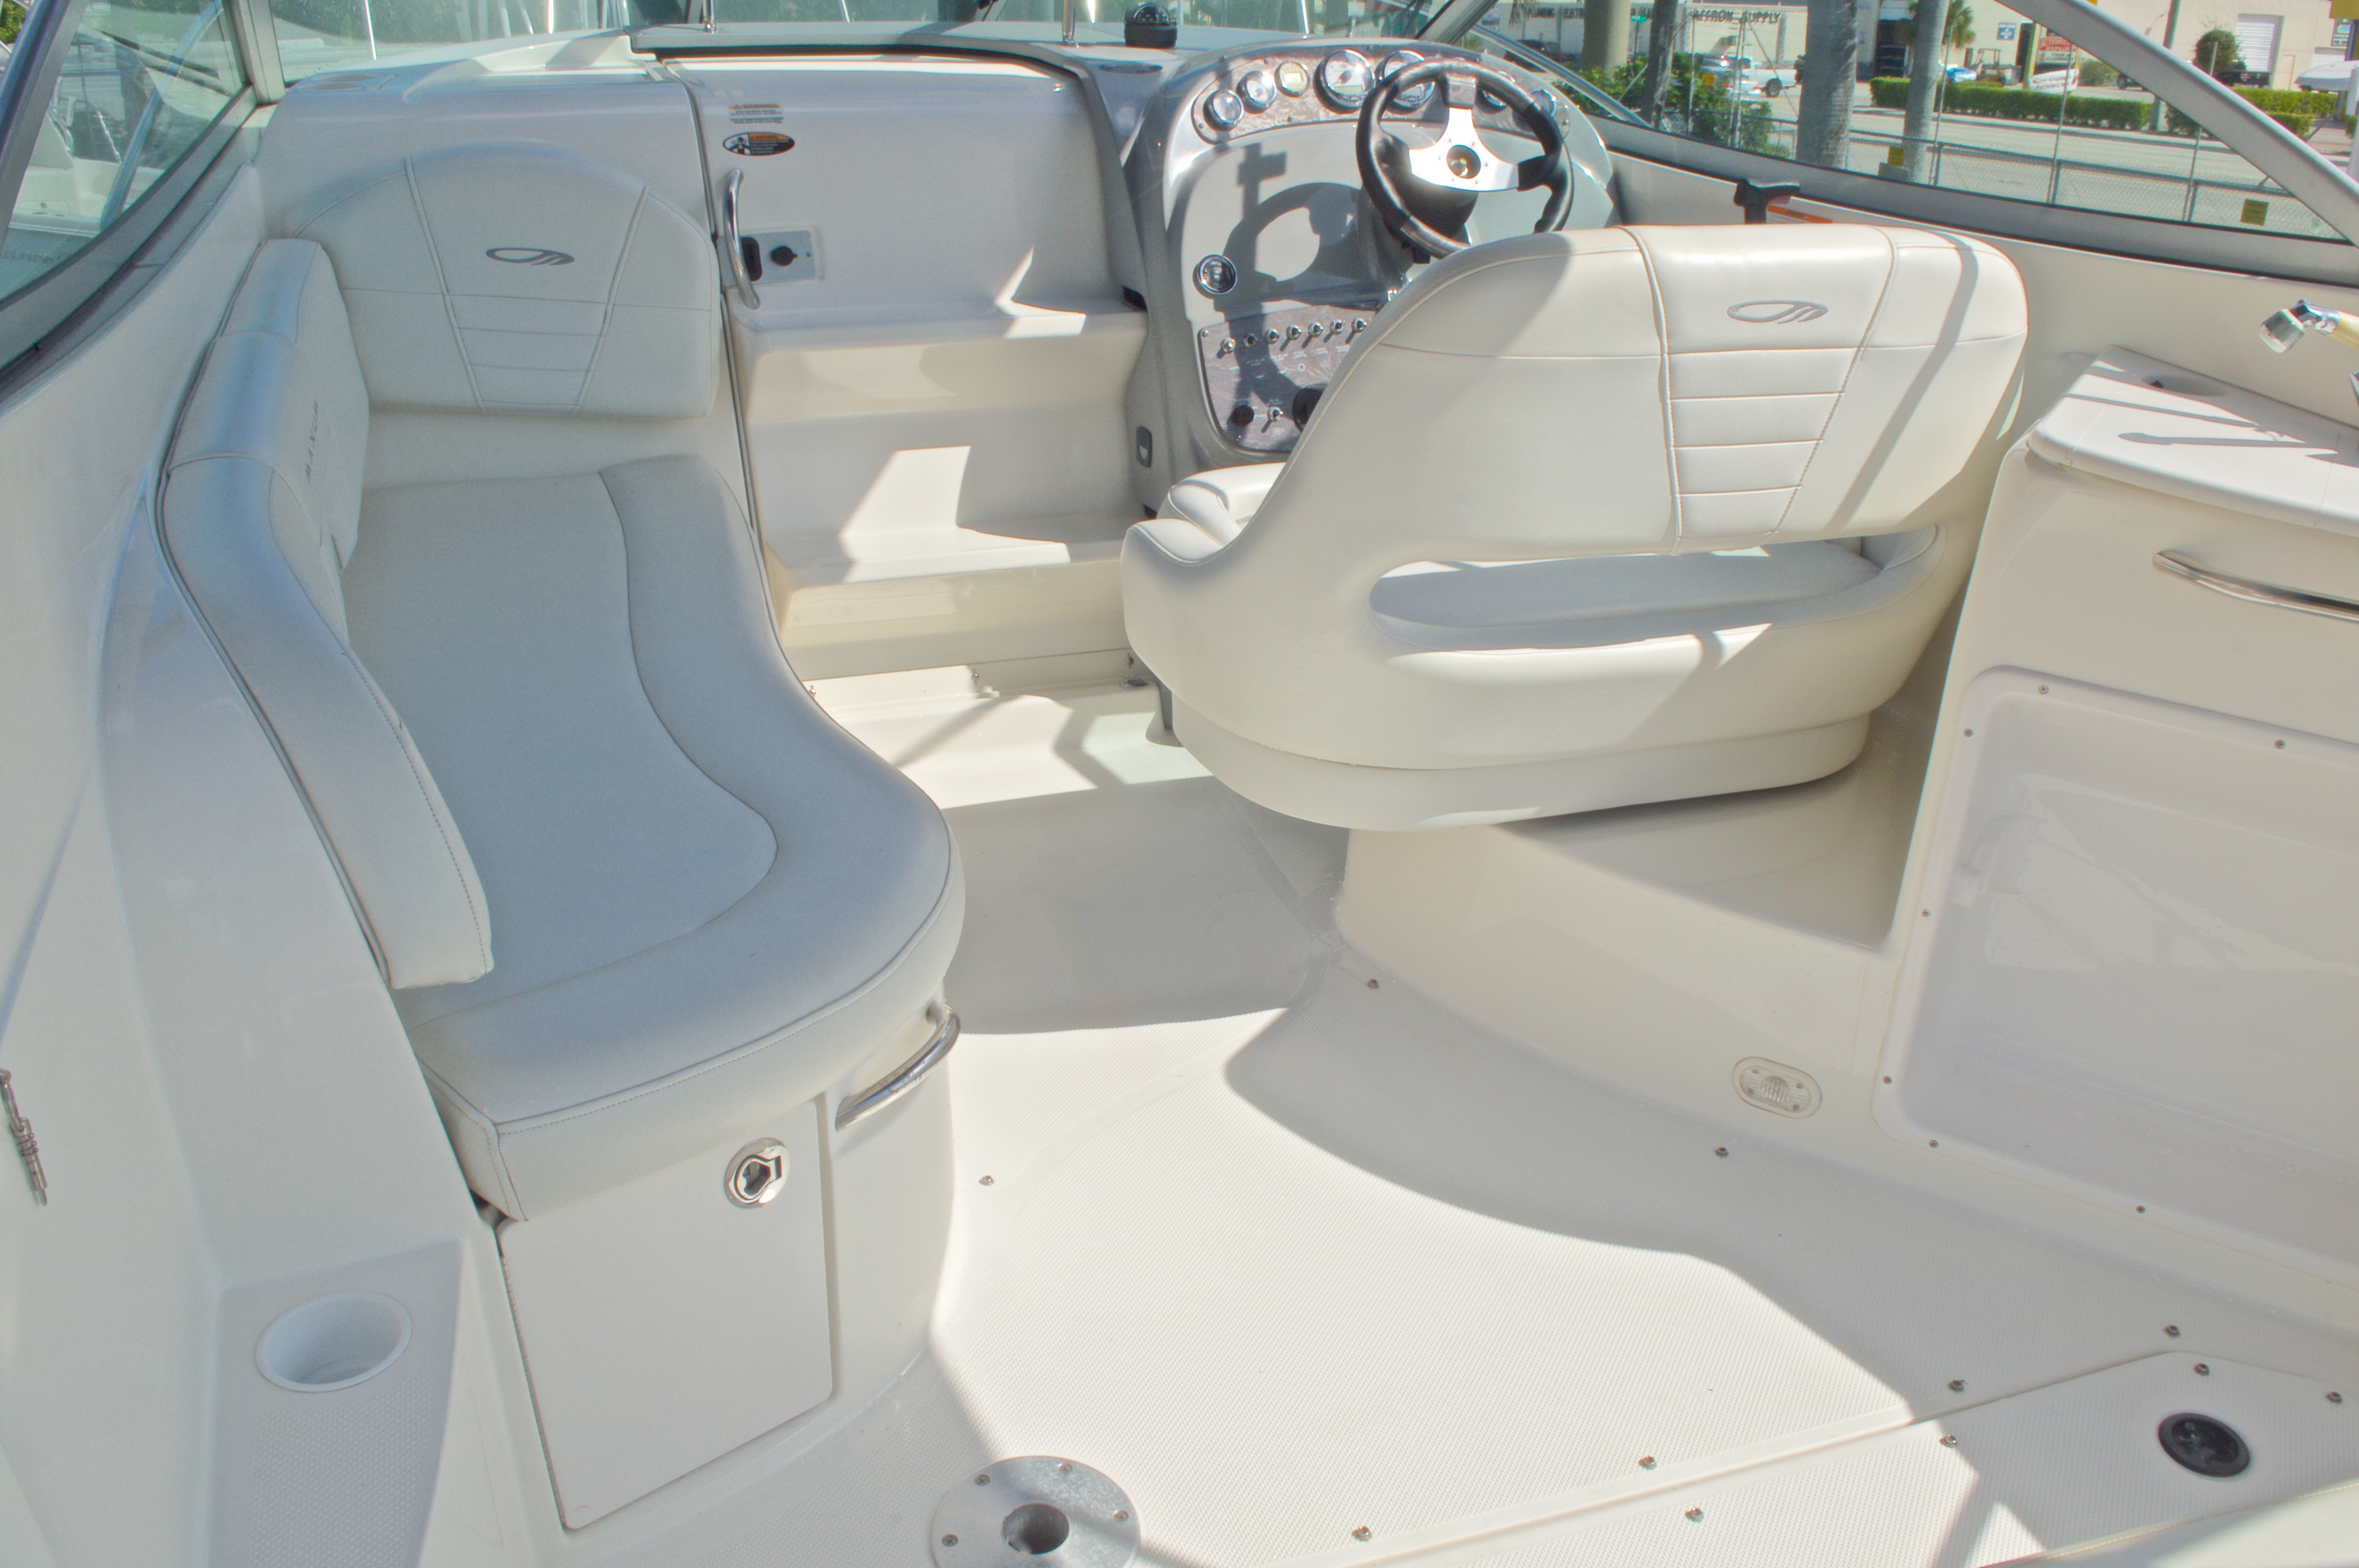 Thumbnail 12 for Used 2007 Maxum 2400 SE boat for sale in West Palm Beach, FL